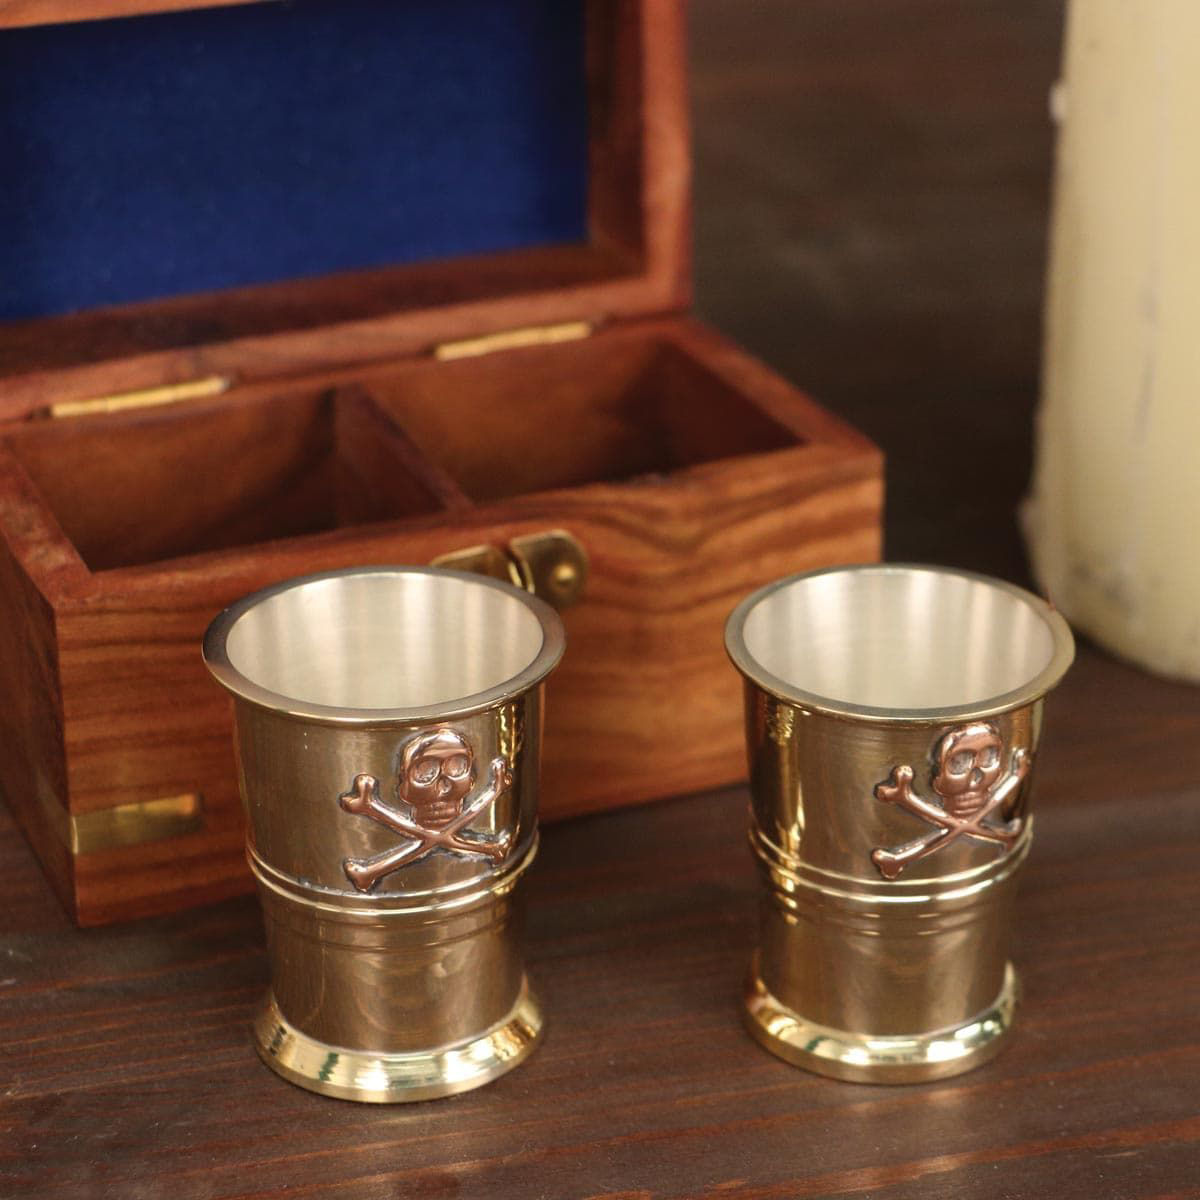 Pirate Captain Cup Shot Glasses with Wooden Storage Box